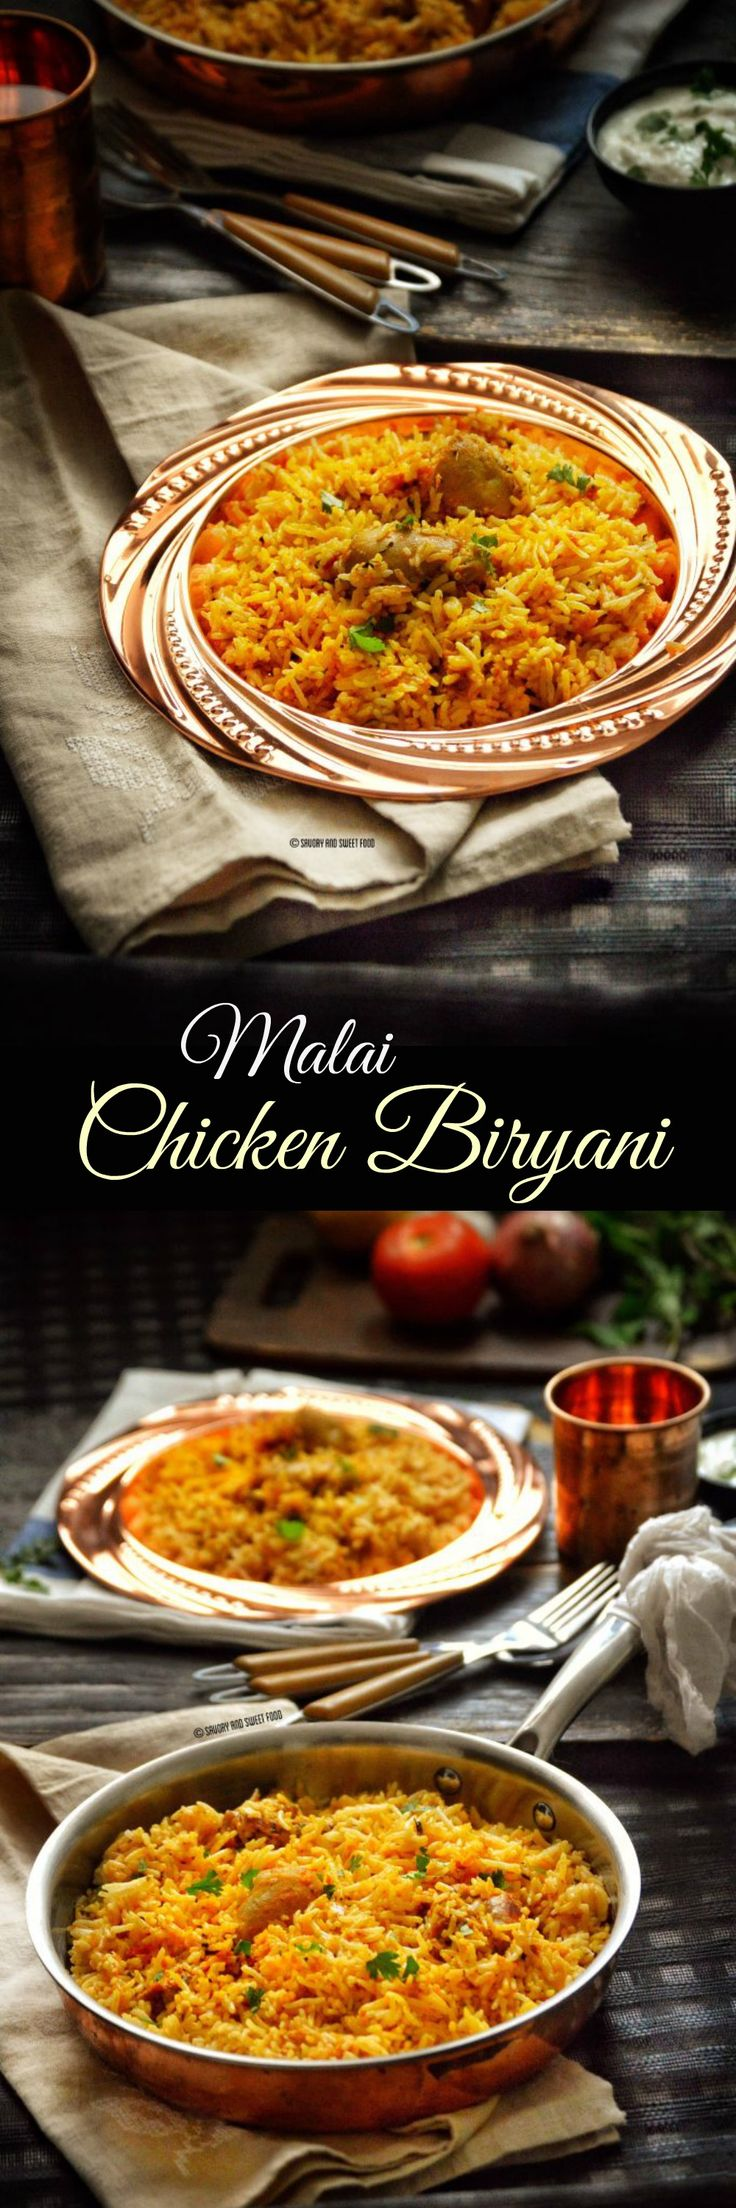 A very tasty chicken biryani, with fragrant spices such as coriander, turmeric, and kasuri methi (Dried fenugreek leaves) infused into a creamy and rich masala and assembled with layers of rice which is finally sprinkled with a highly aromatic saffron milk.